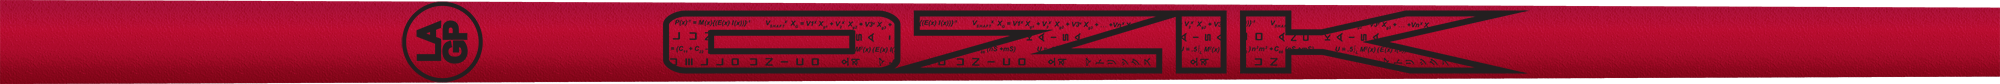 Ozik White Tie: Candy Apple Red Black Textured - Wood 60 R